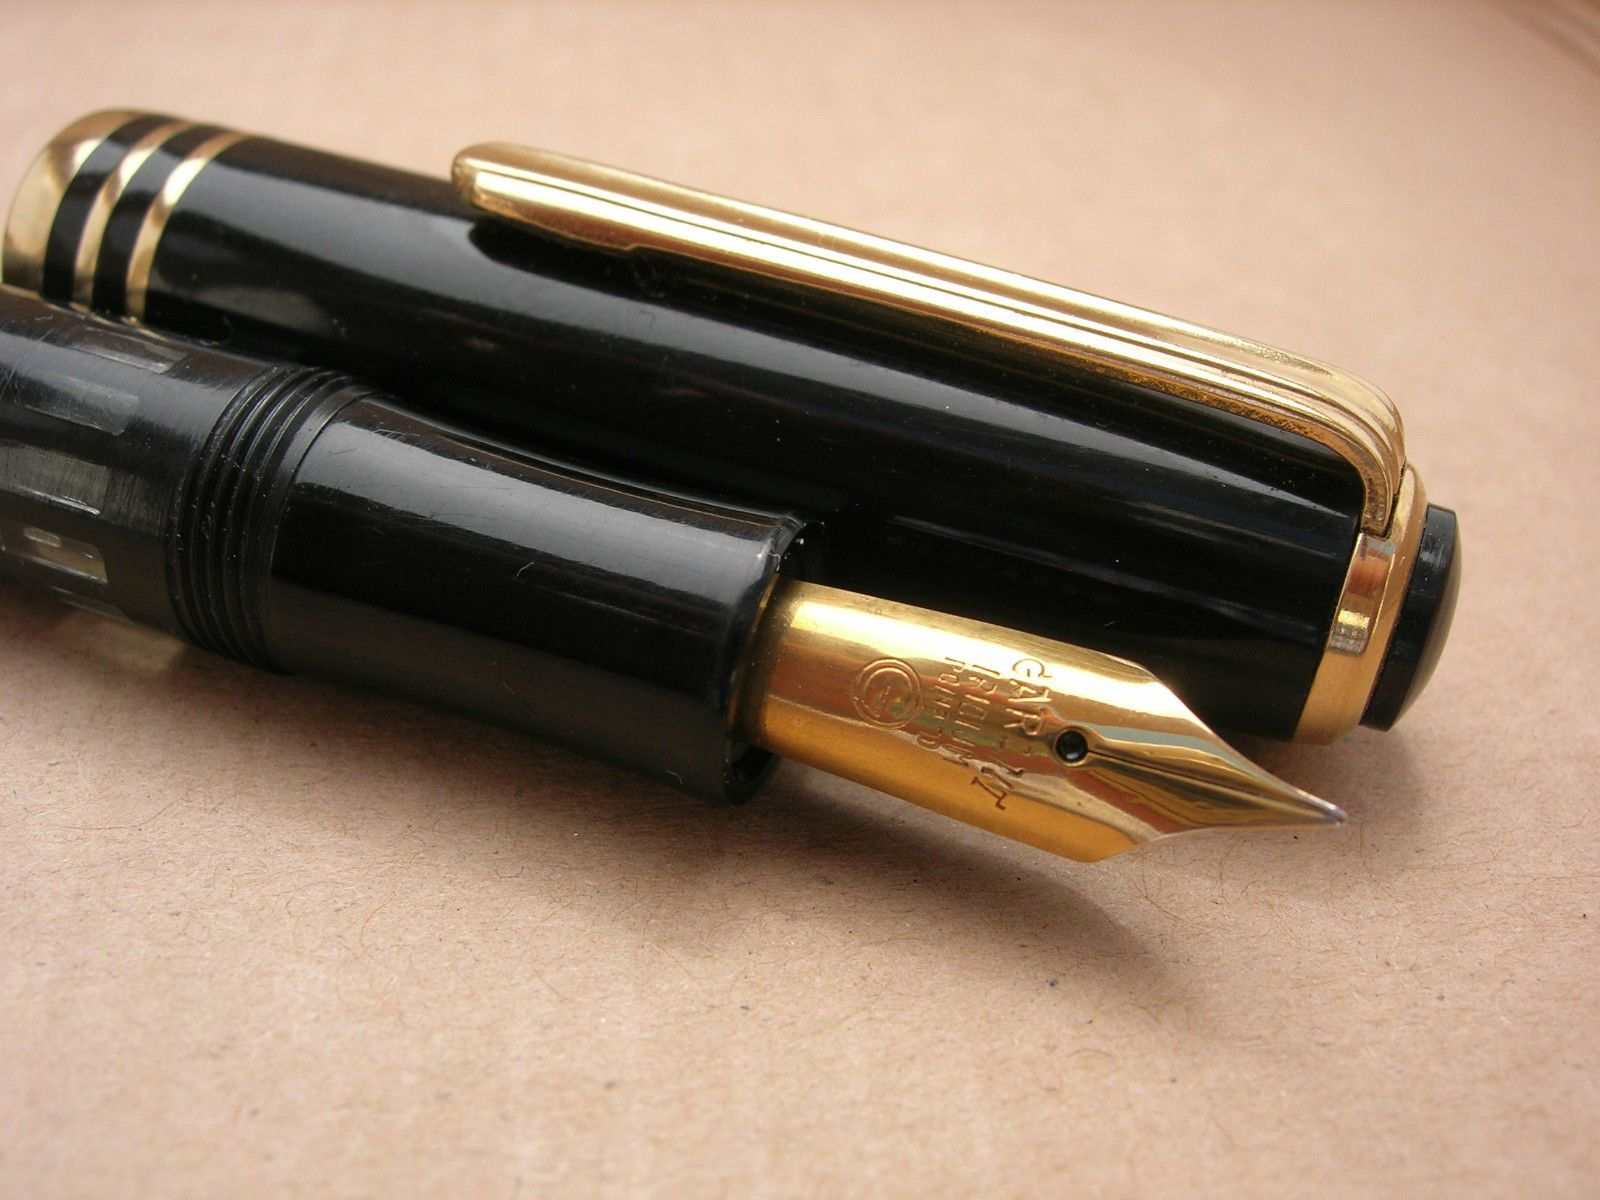 1960s Garant Alcor Black Over Sized German Pen Fully Working Ebay